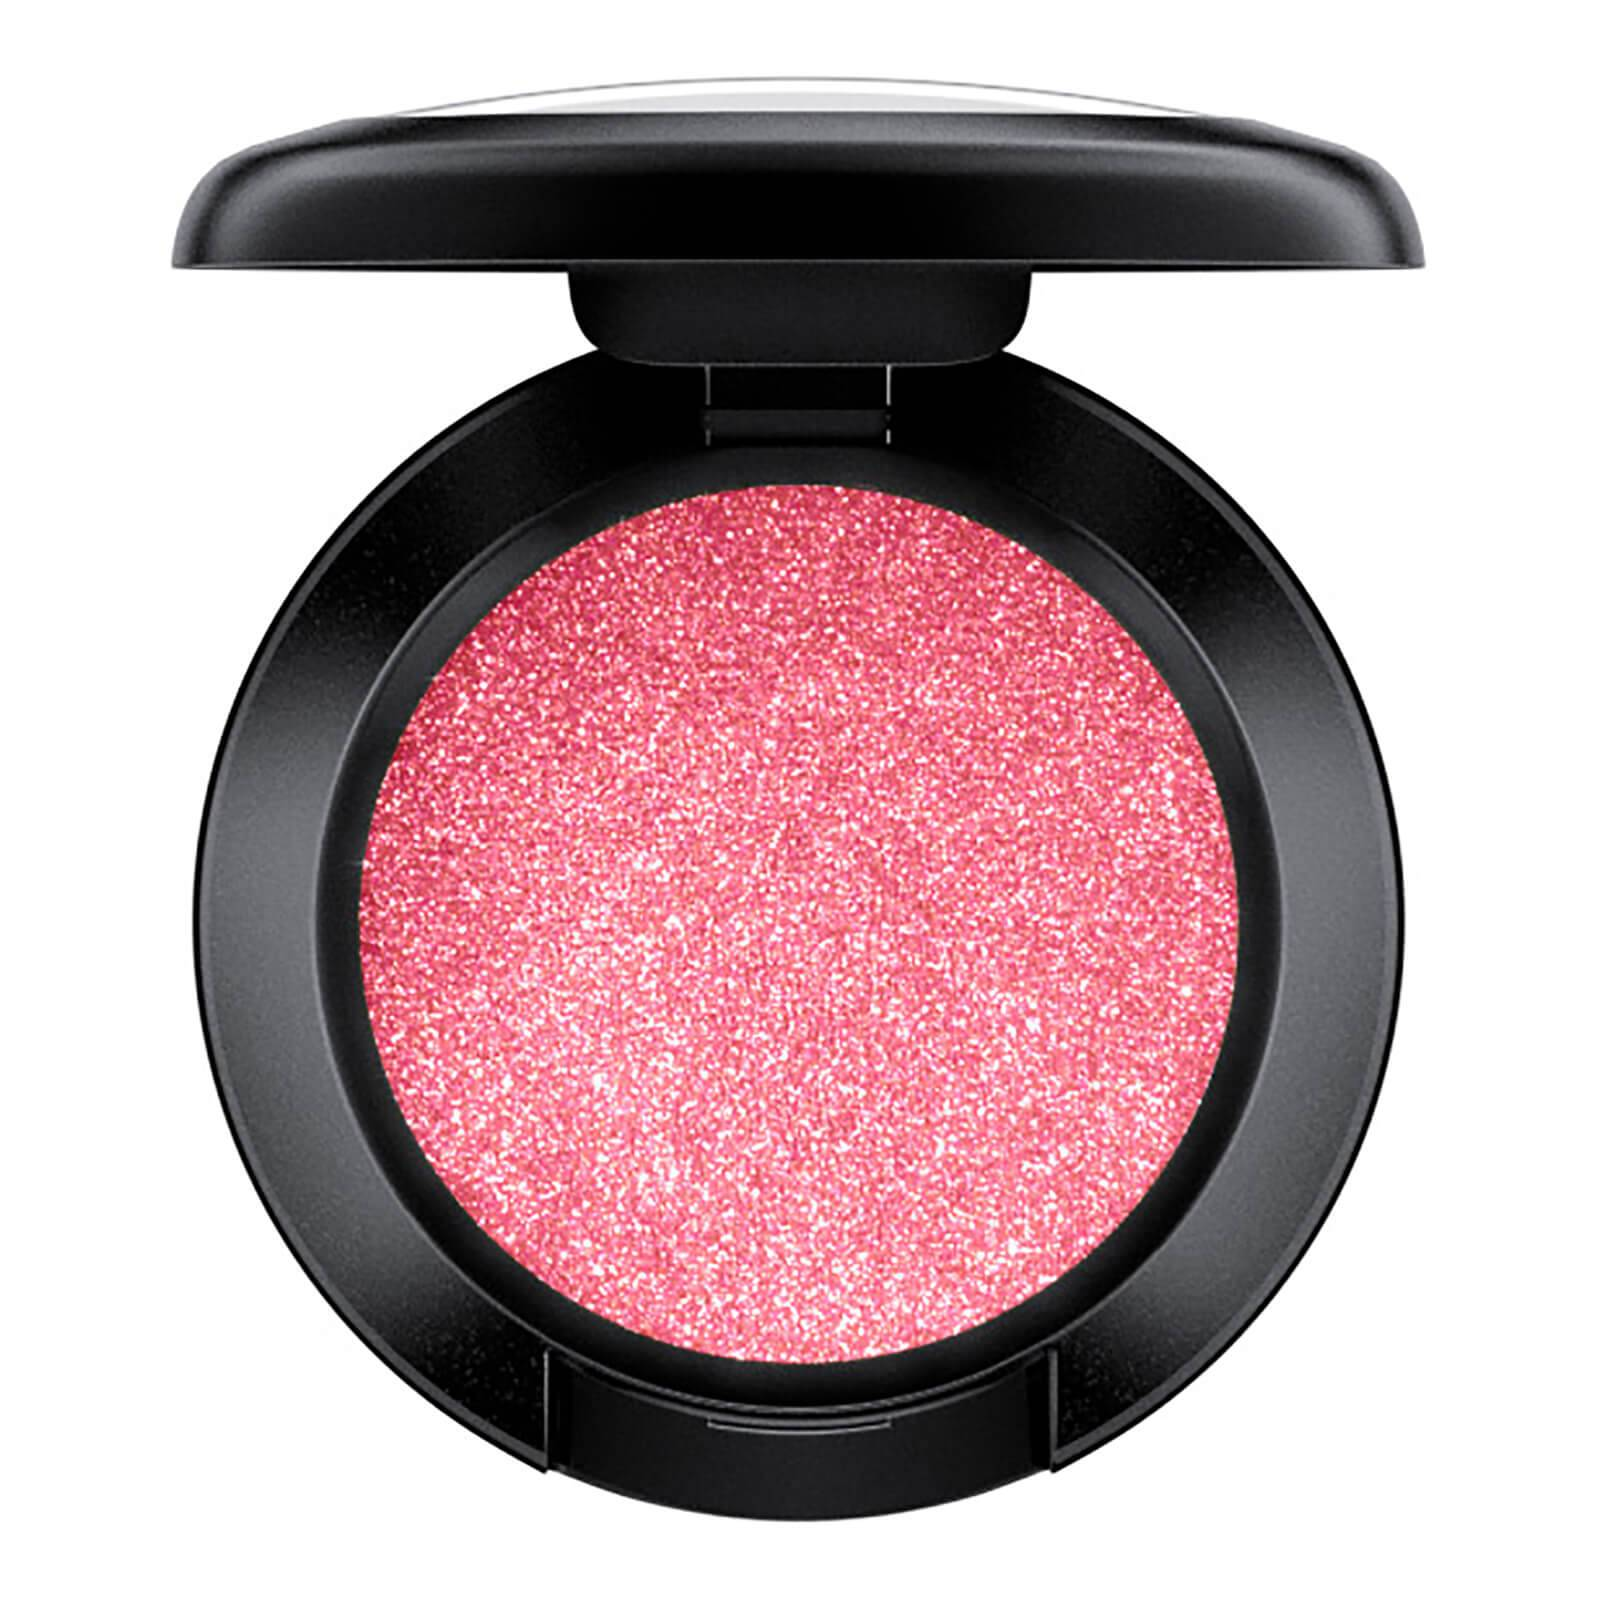 Mac Pop Dazzleshadow Ombretto (Varie tonalità) - Let's Roll